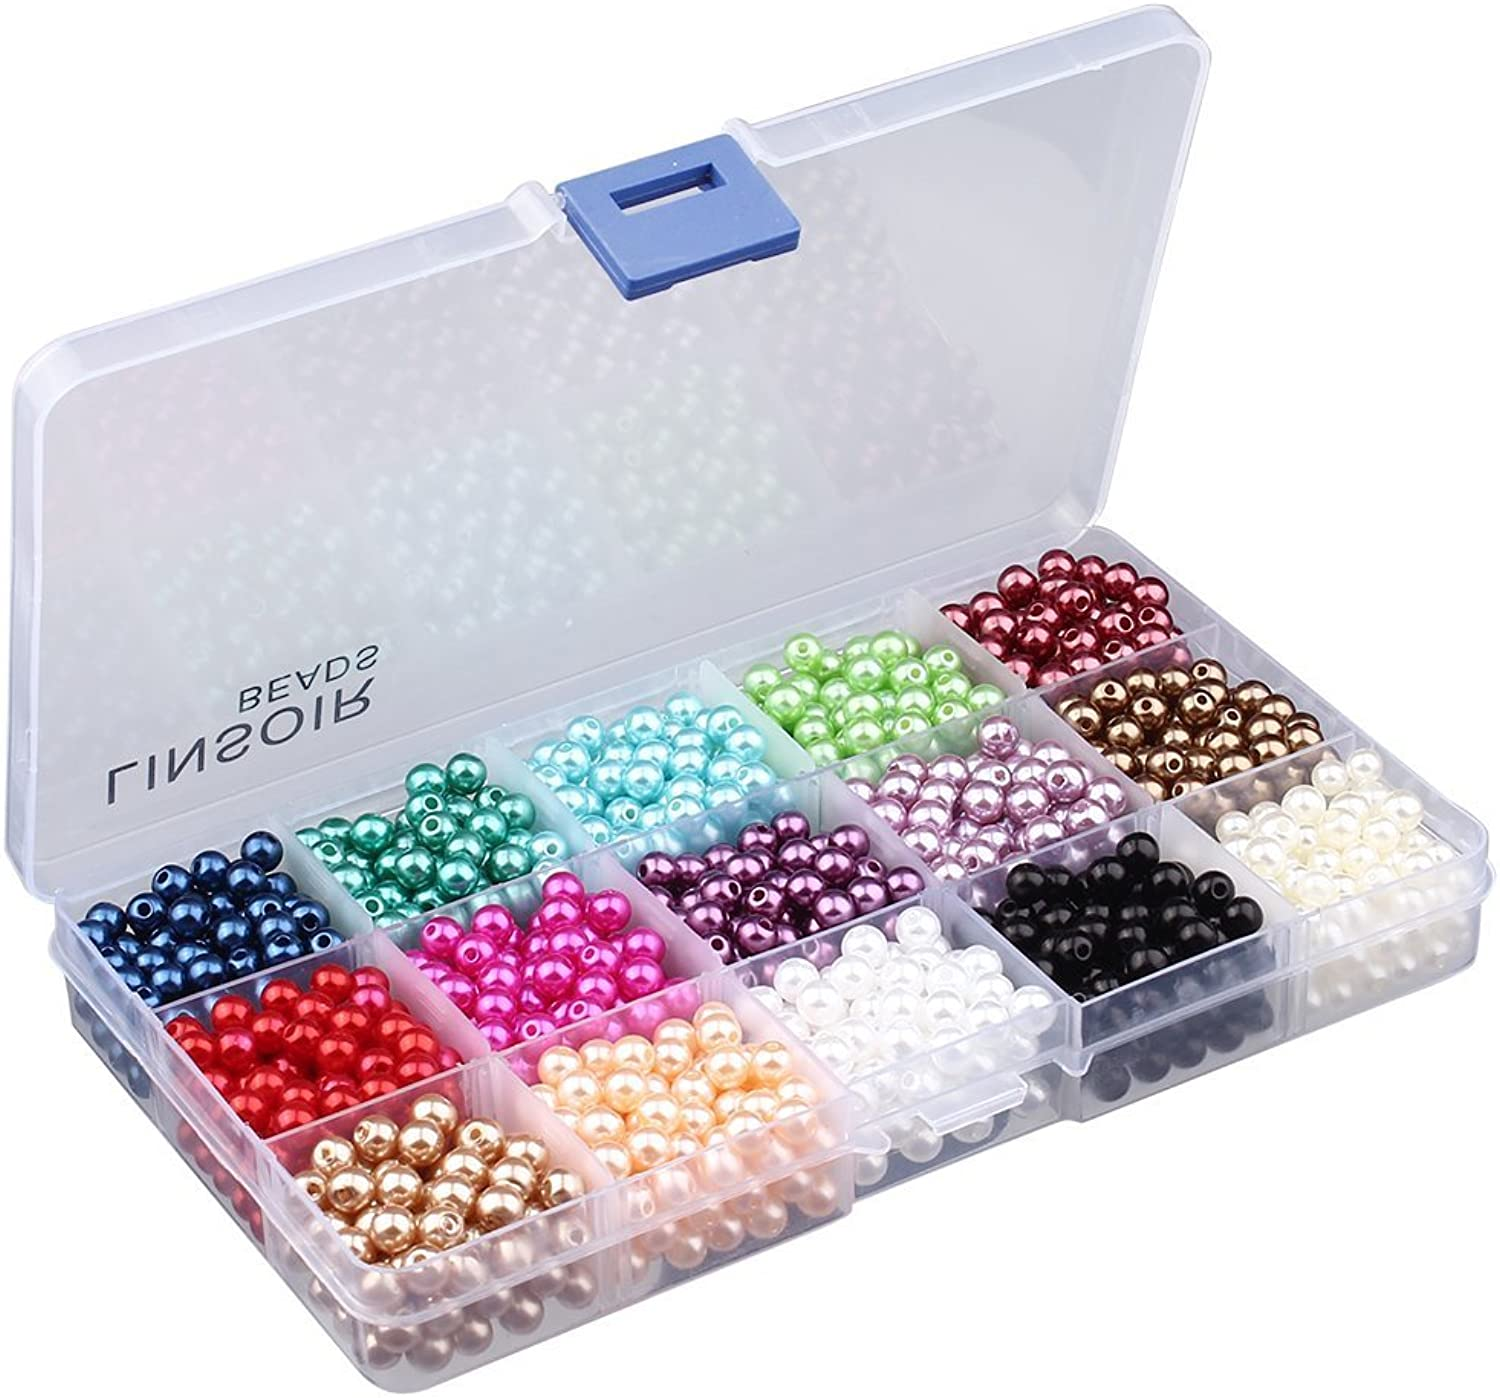 Linsoir Beads 1500 Pcs Tiny Satin Luster Imitation Pearls Beads for DIY Jewelry Making Value Pack 15 color Assorted (6mm)